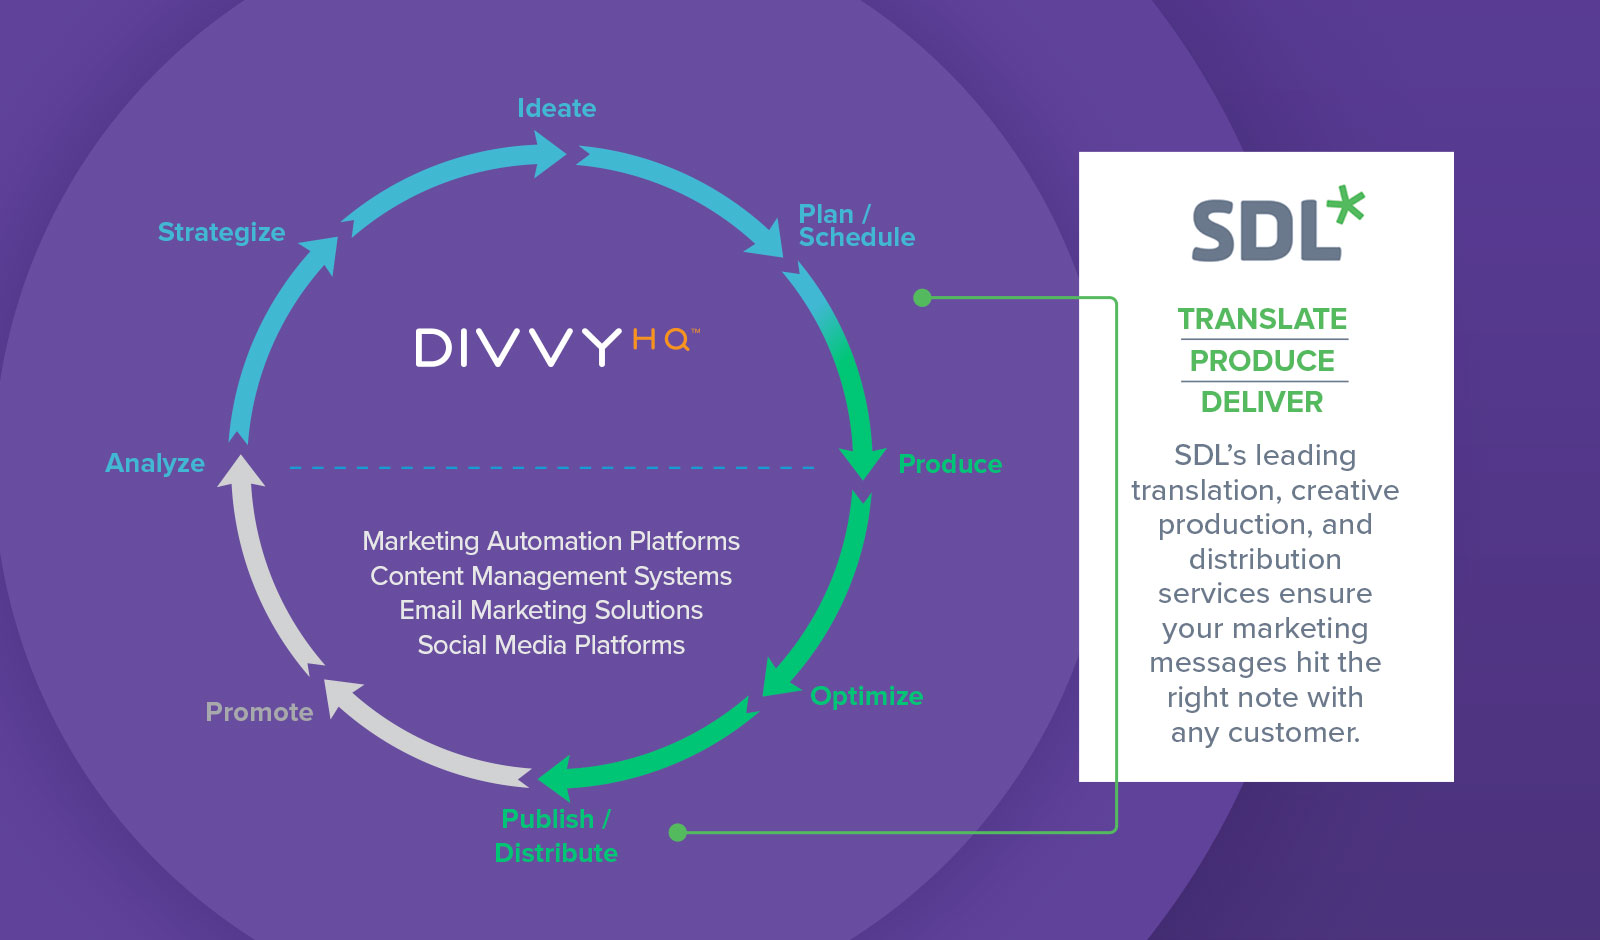 SDL's translation, creative production and delivery services align with DivvyHQ's focus on process management.